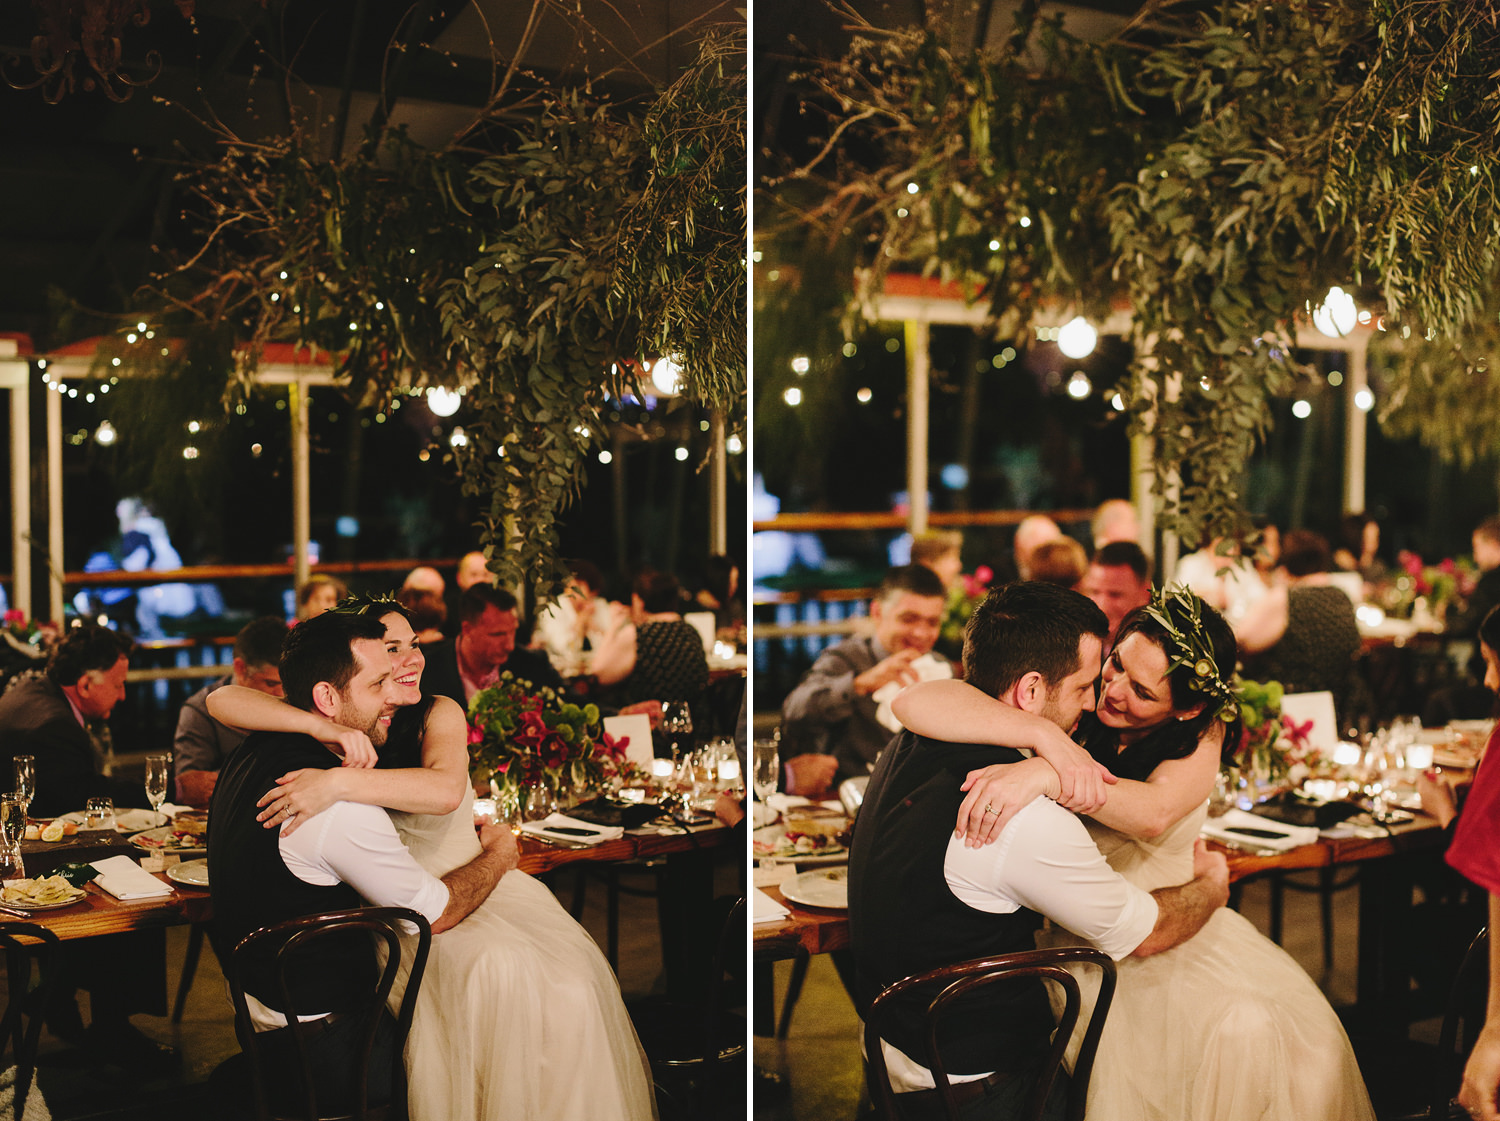 Melbourne_Winery_Wedding_Chris_Merrily155.JPG